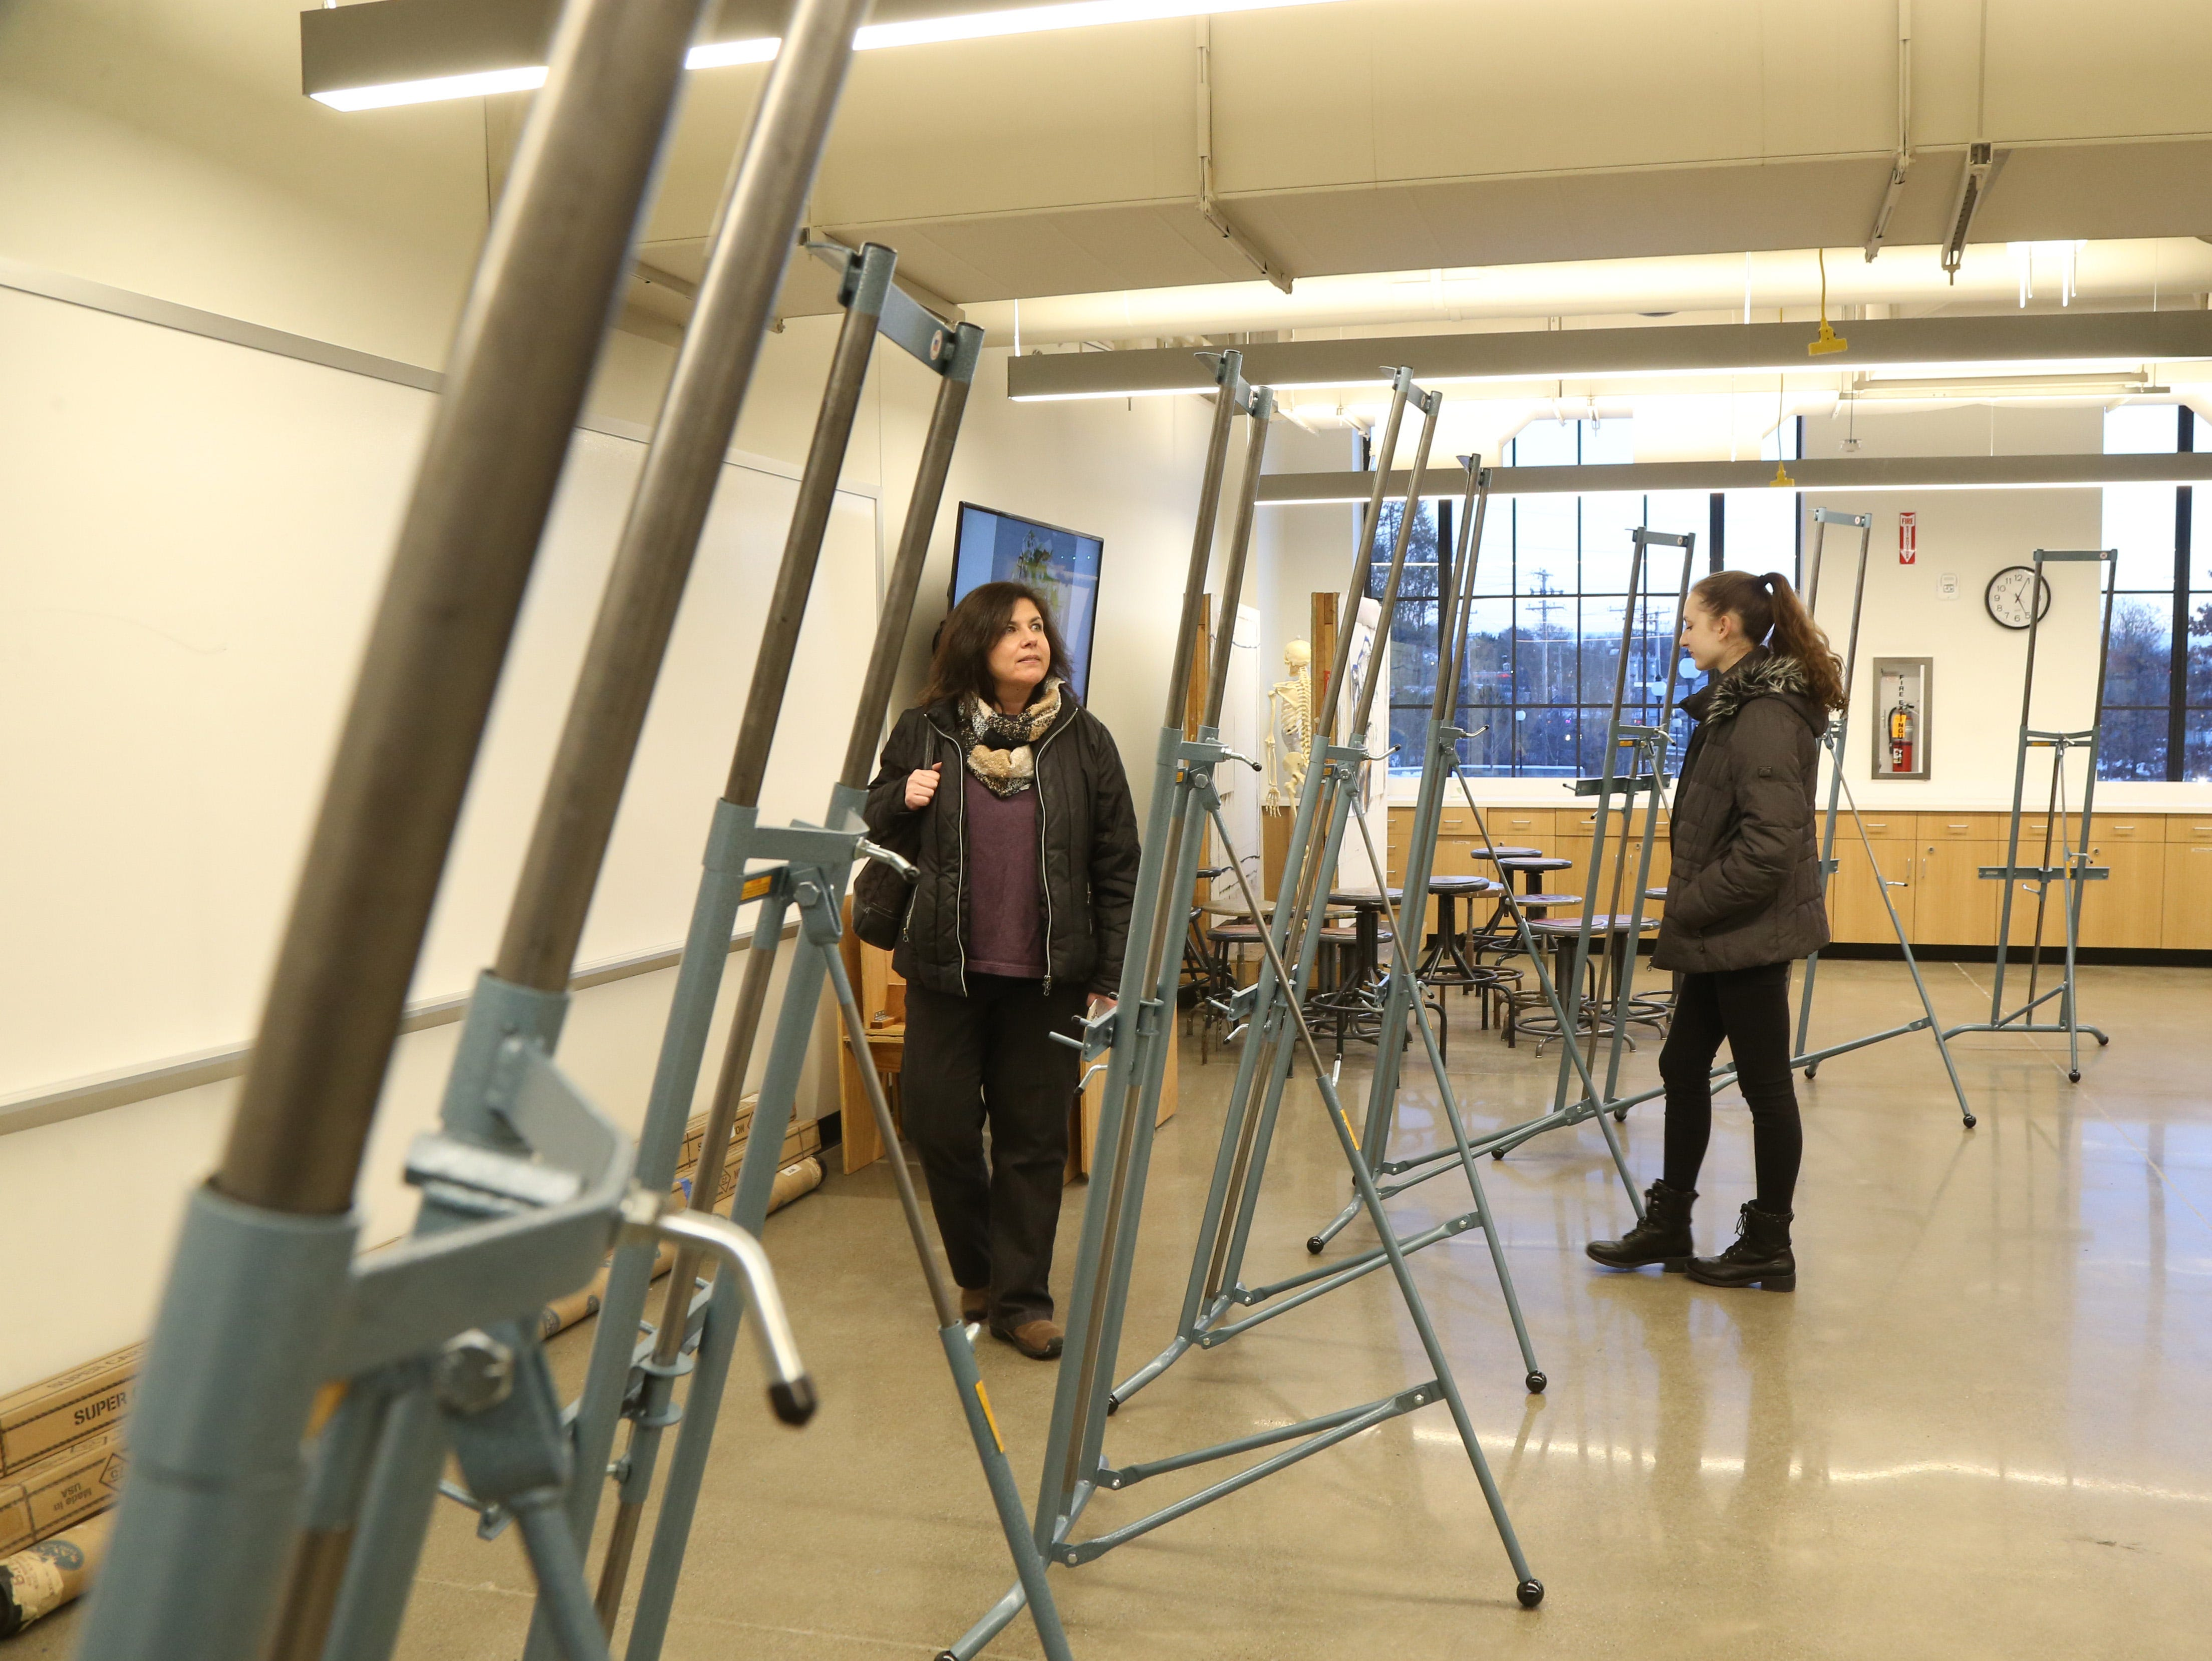 From left, Patrice and Megan Bower of Goshen explore the painting studio at Marist College's Steel Plant Studios in Poughkeepsie on February 1, 2019. Megan is planning to attend Marist College in the fall.